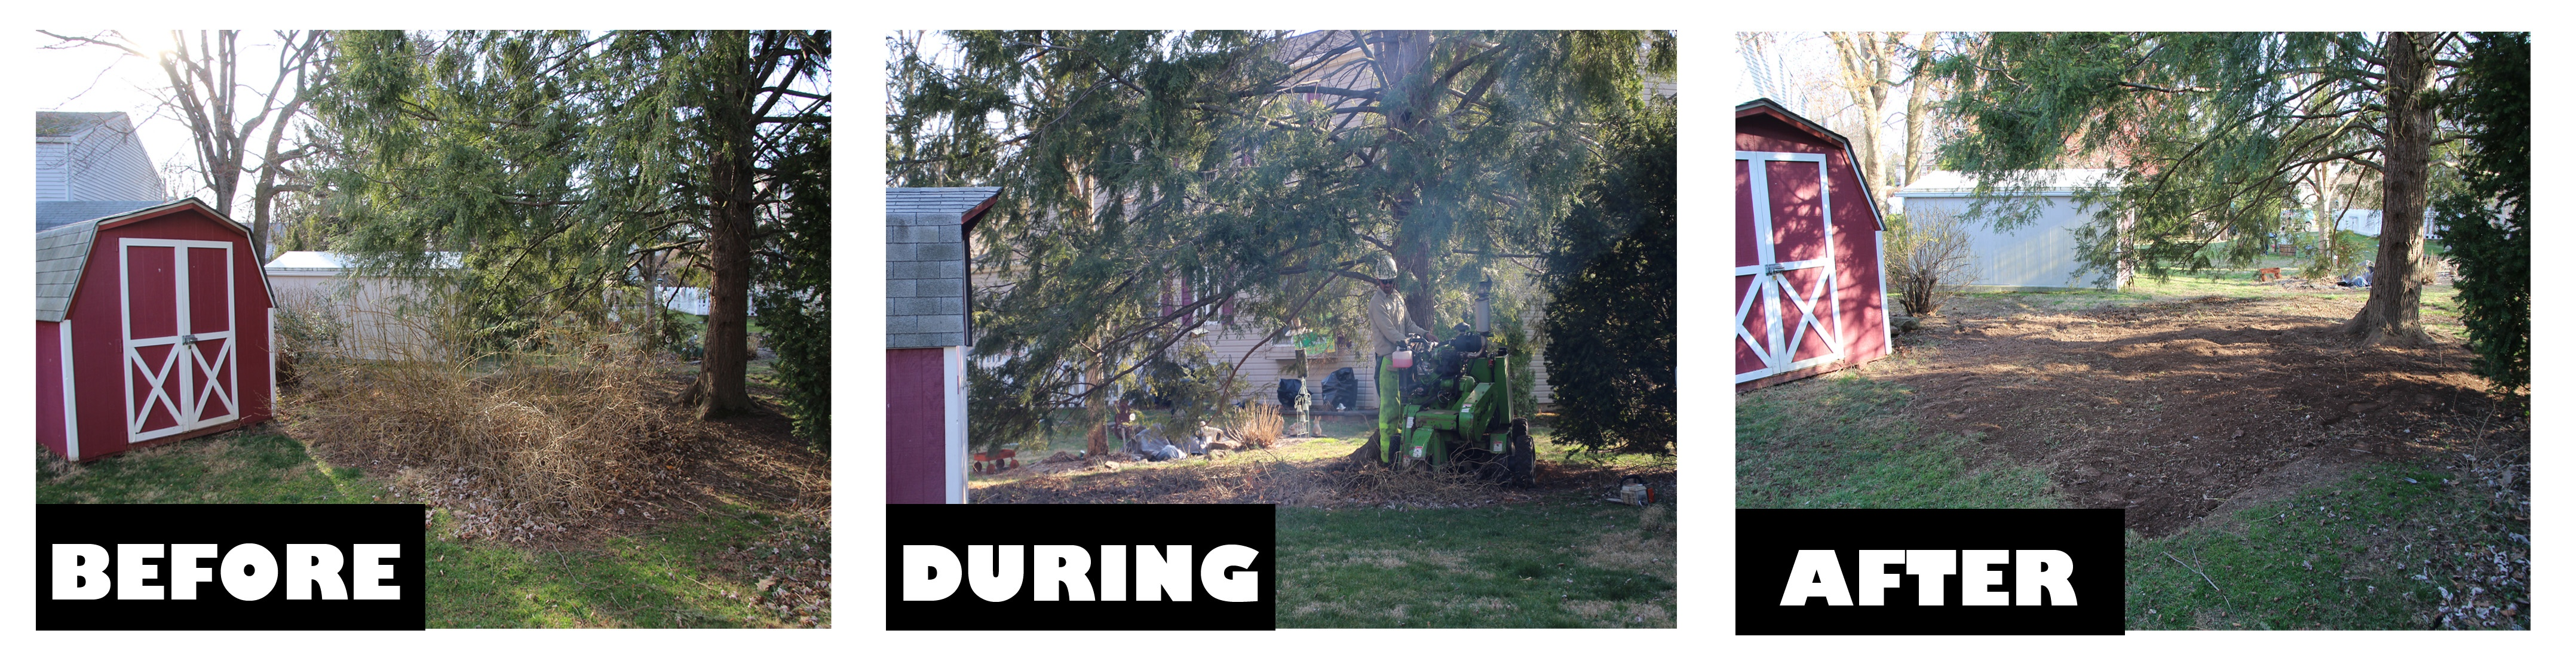 Video shows Spring Cleanup of yard including dead tree removal and stump removal